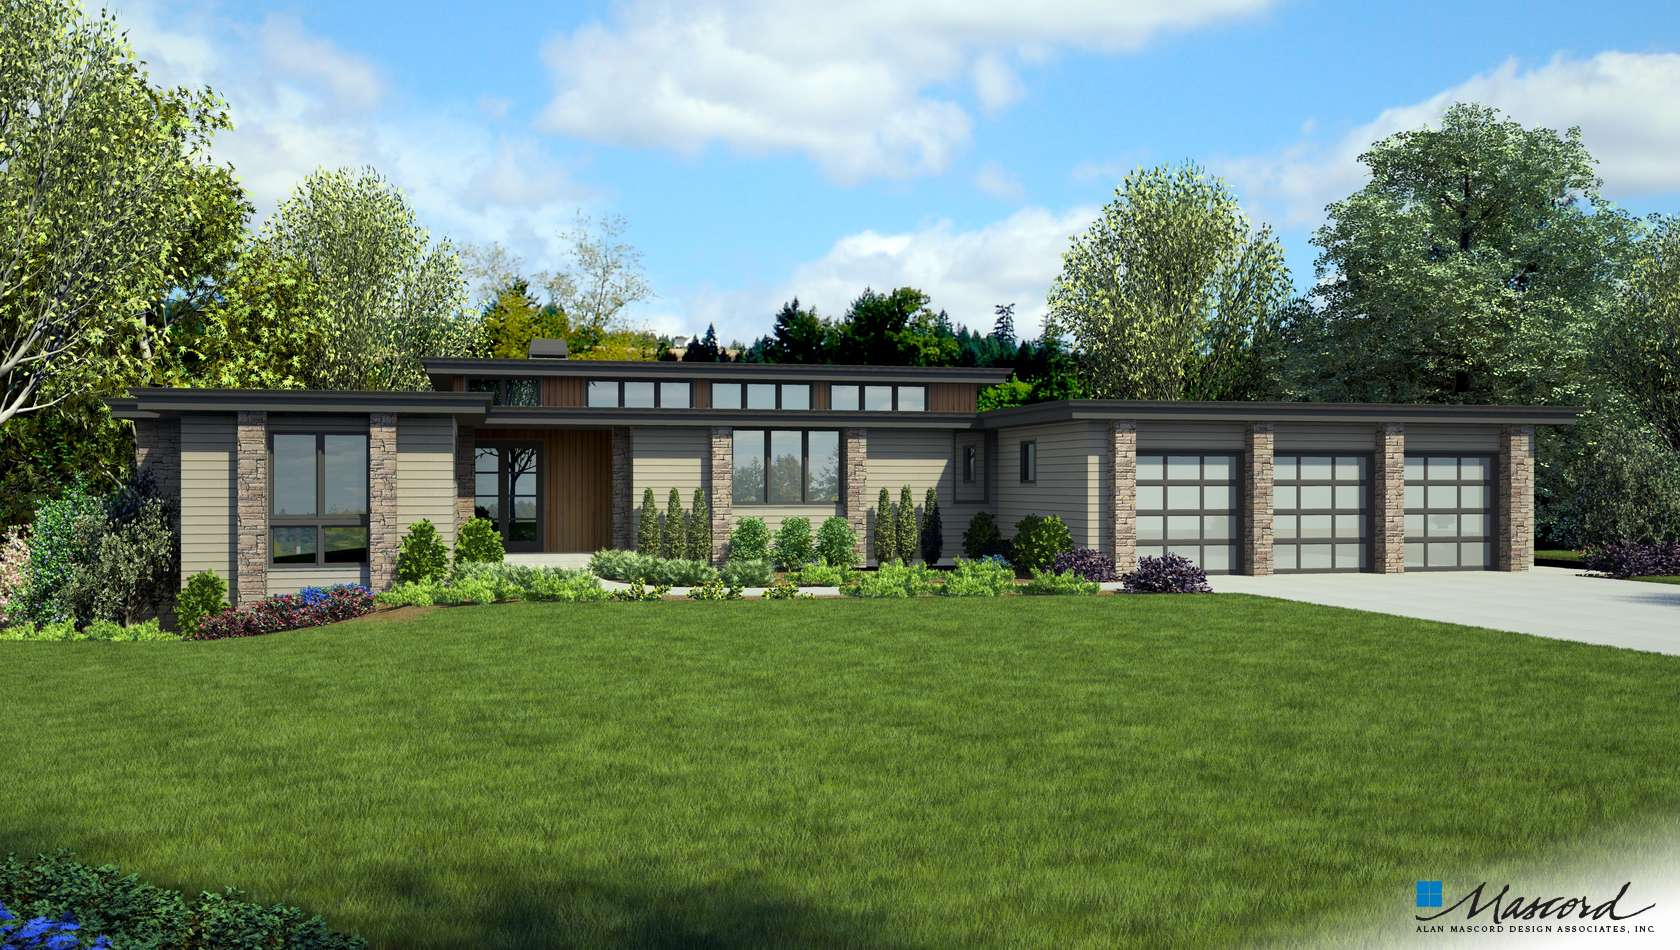 Main image for house plan 1240A: The Lynville